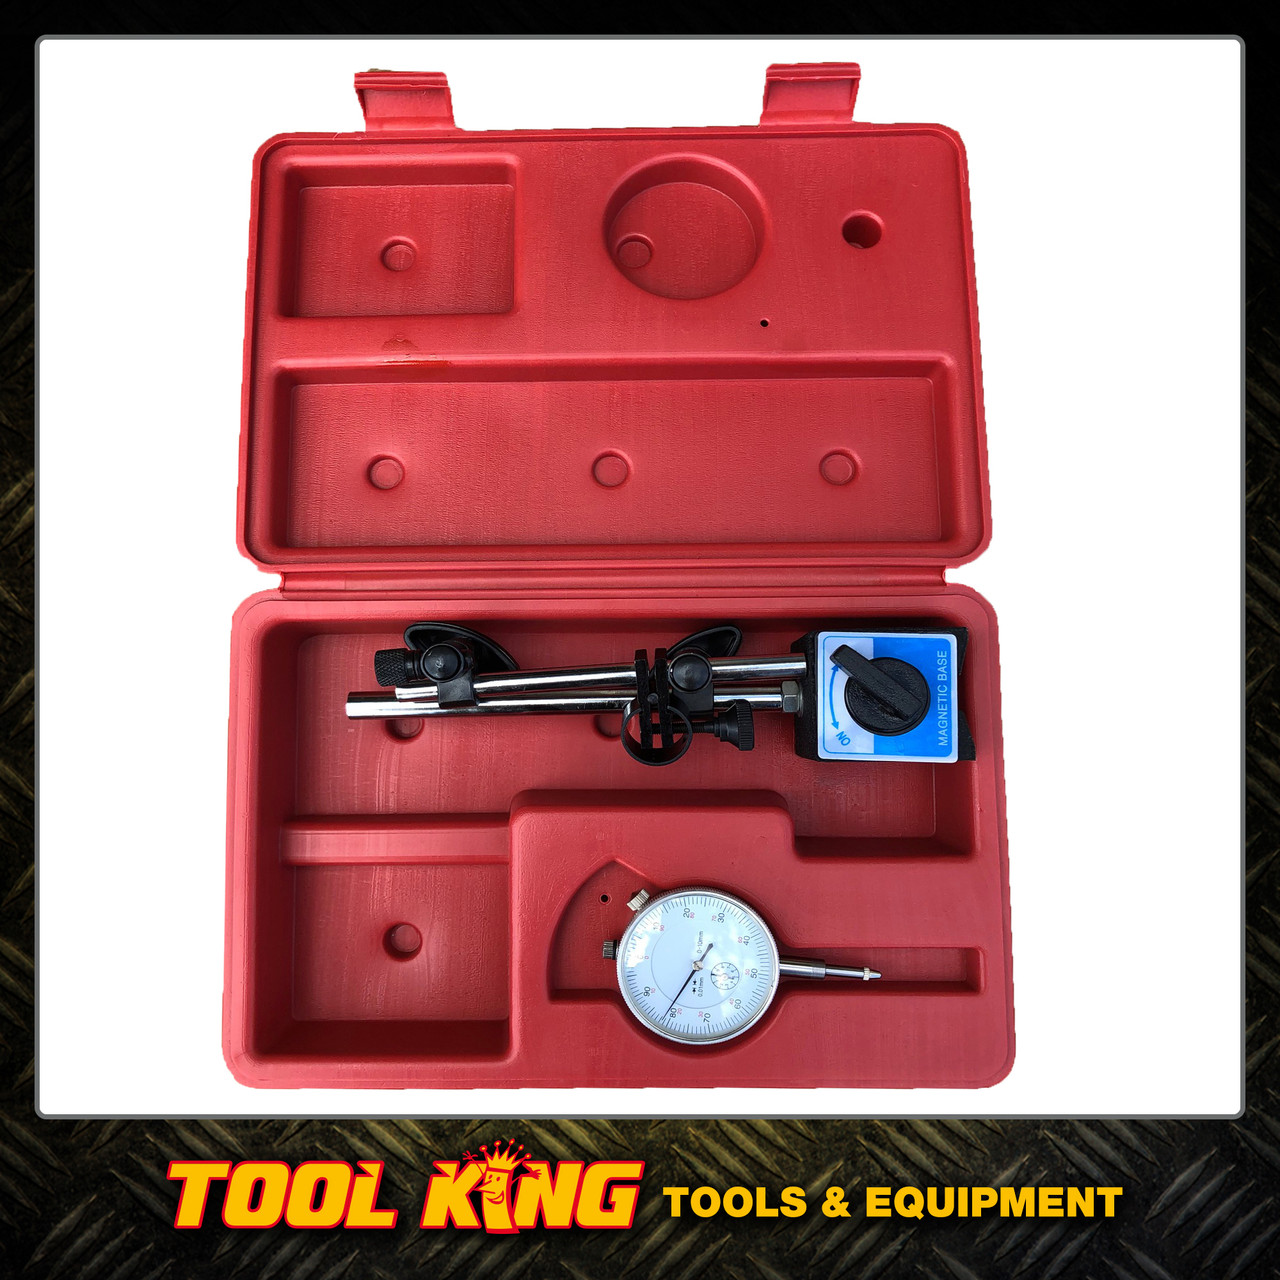 Dial Indicator and Magnetic Base set